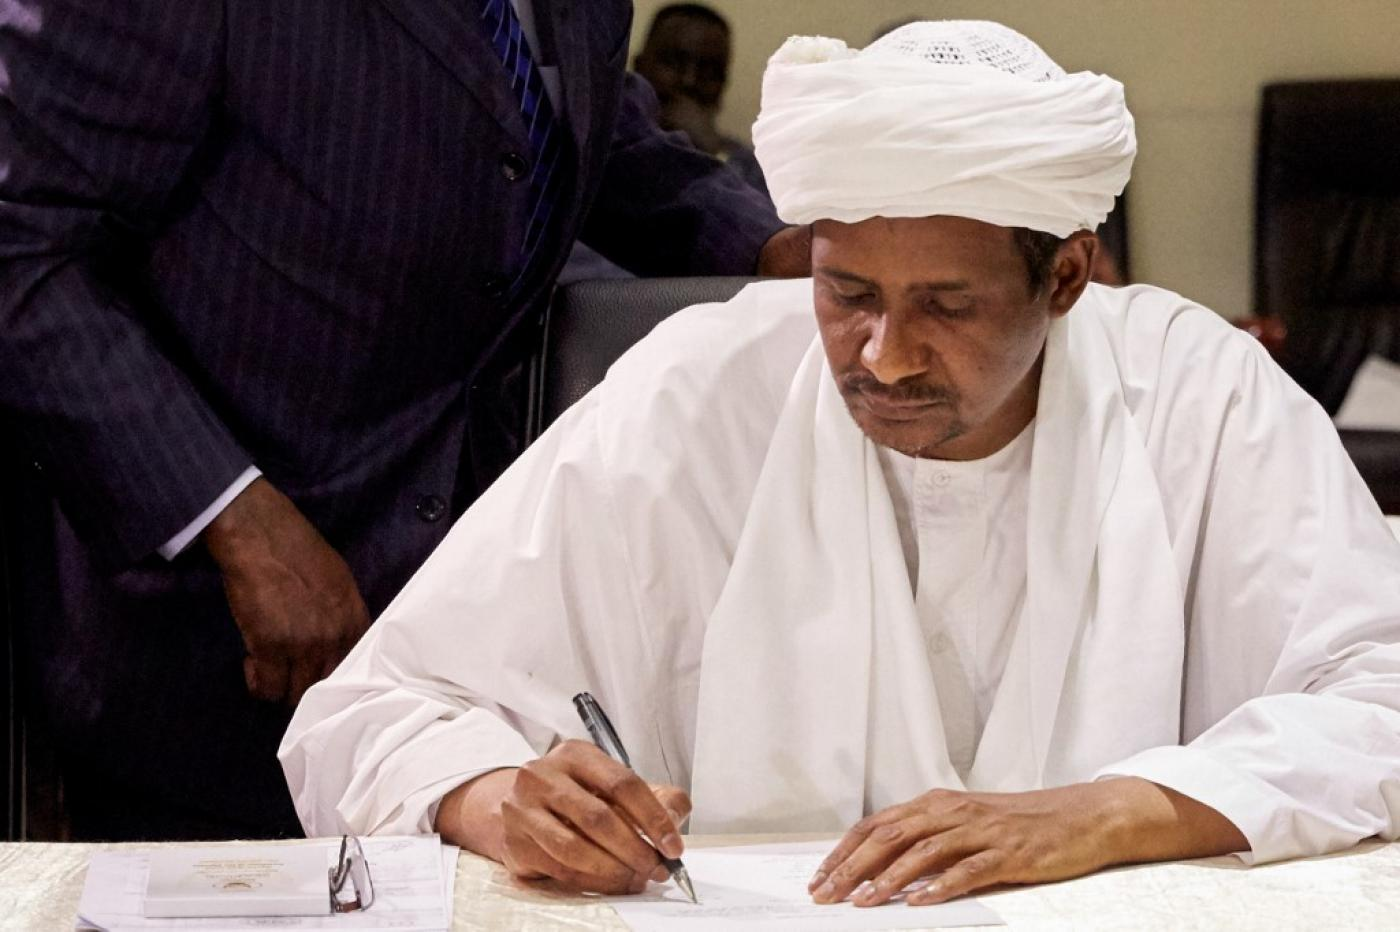 Sudanese govt signs long-awaited peace deal with armed groups